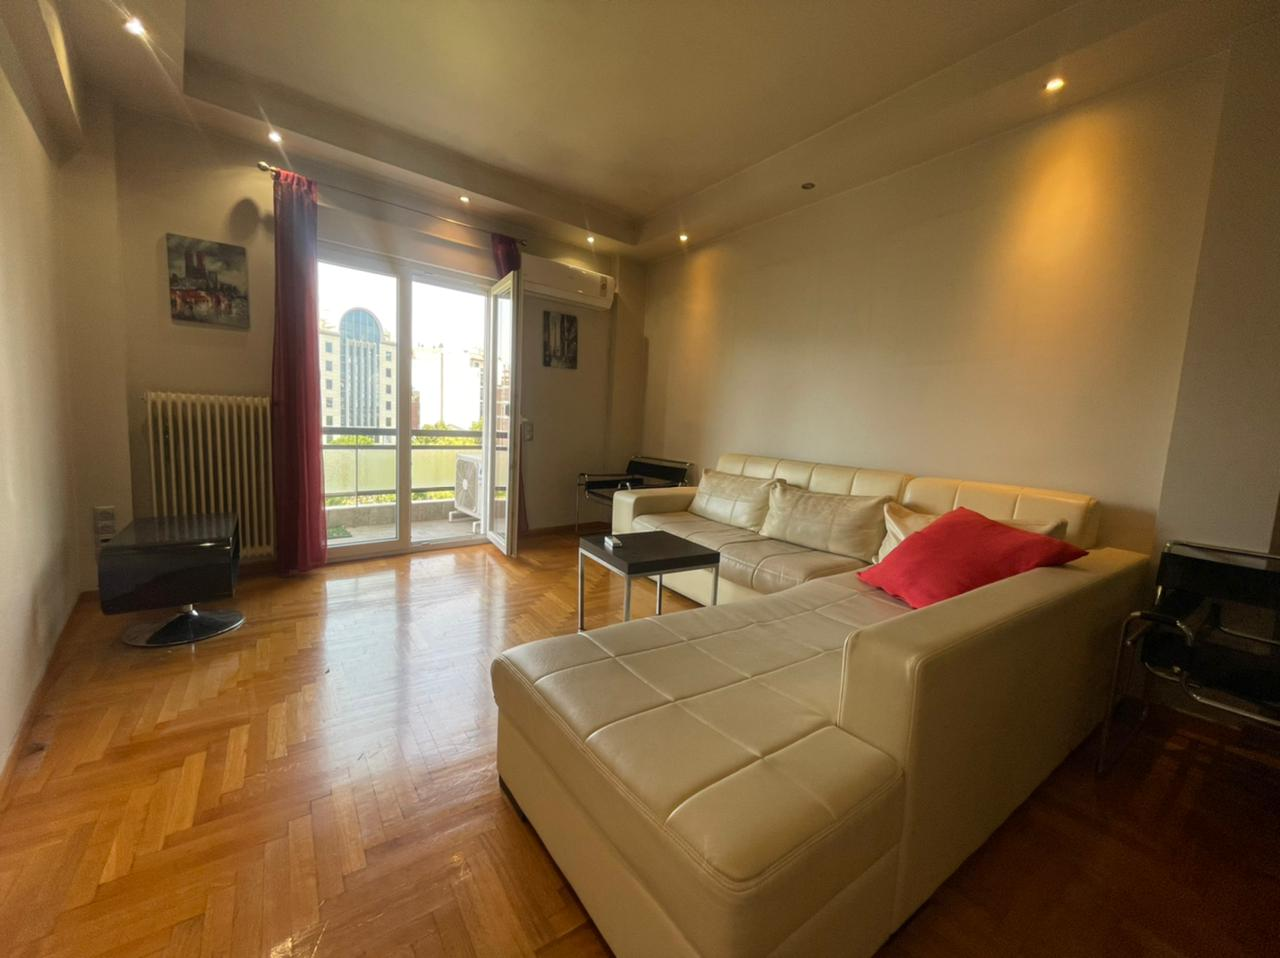 Fully renovated flat of 1 bedroom